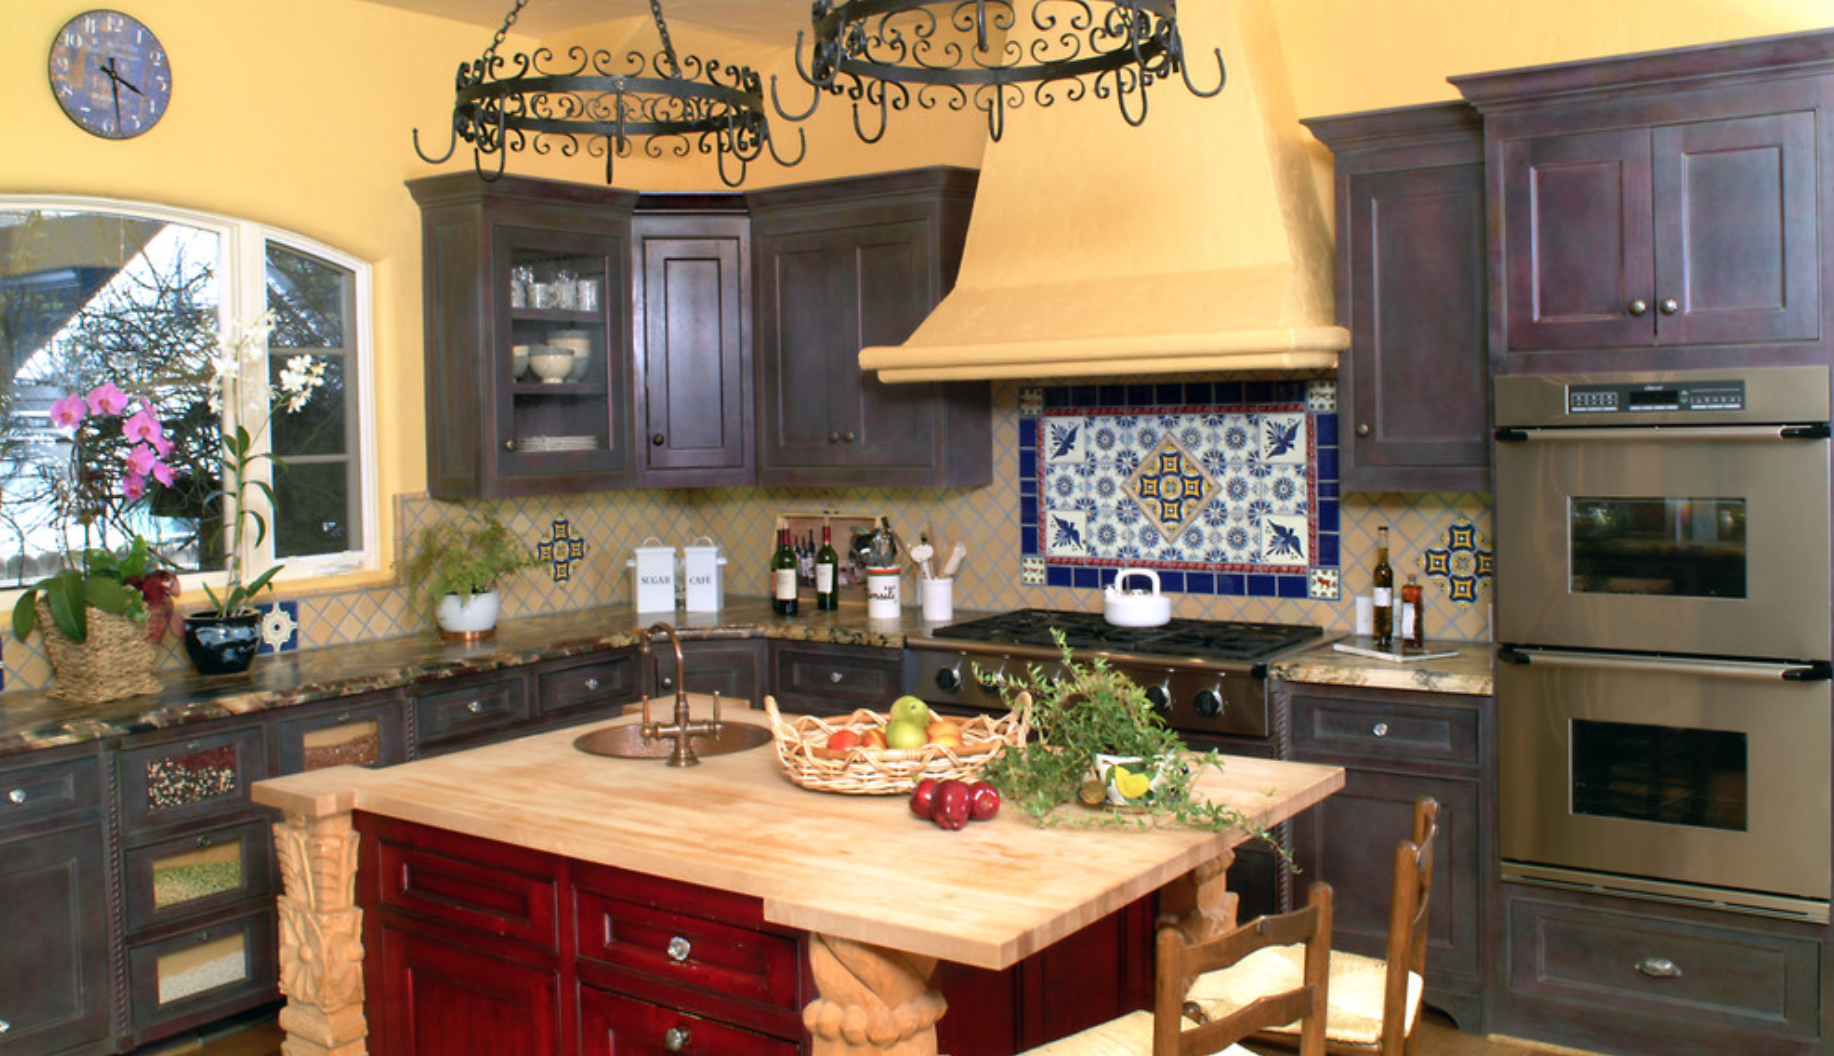 What's your kitchen personality? Everyone has their own kind of style when it comes to #kitchens - Follow the link to see some kitchen #designs to match up with your own personality! #Kitchens #Blog #Motivationalmondays #Experttrades #Inspiration #Contemporary #Craftsman #Mediterranean #Eclectic